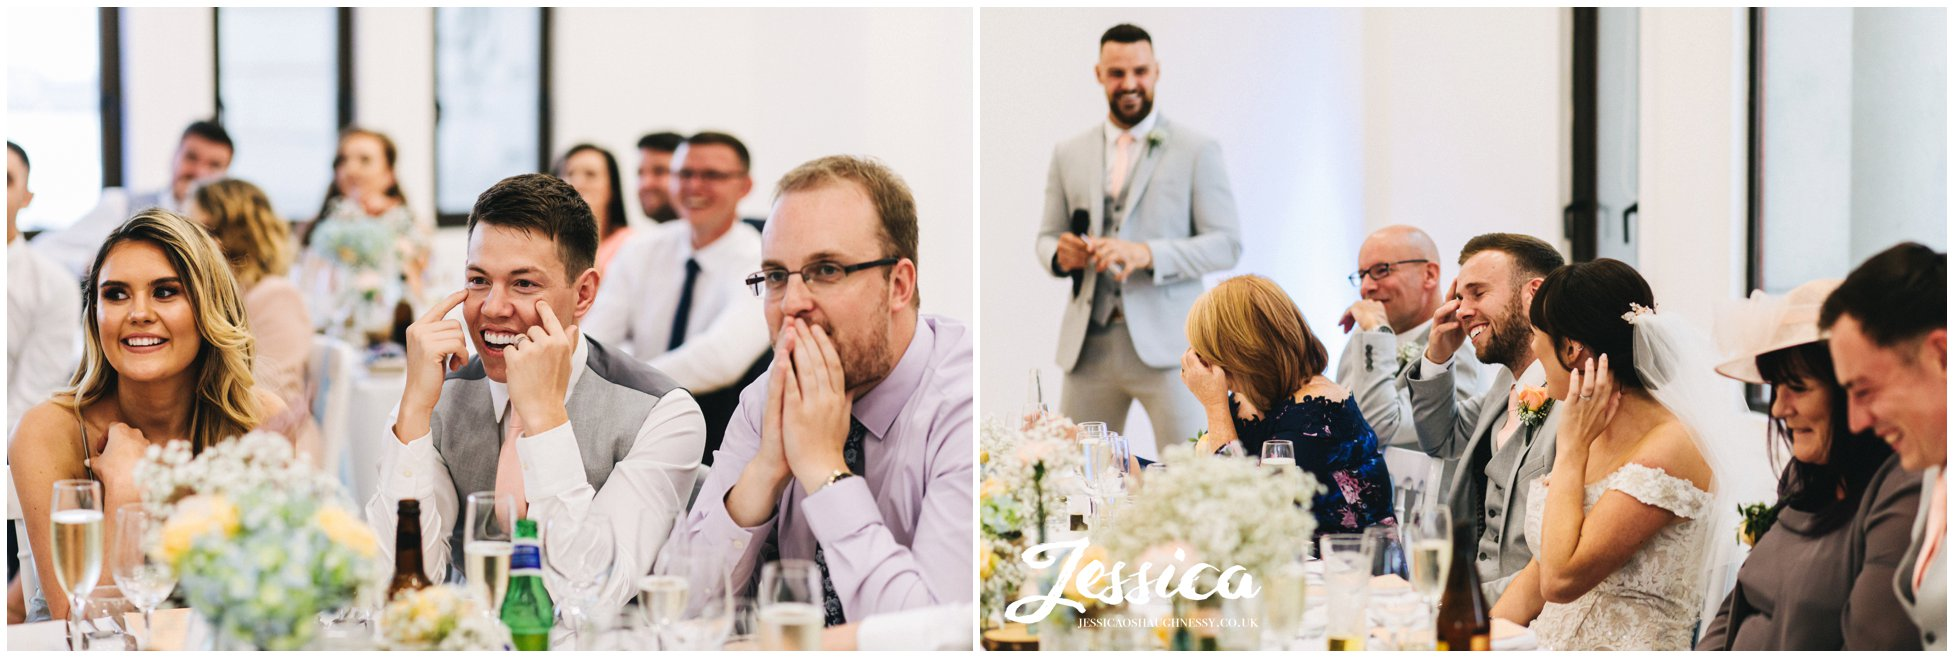 best man stands to do his speech as the groom cringes